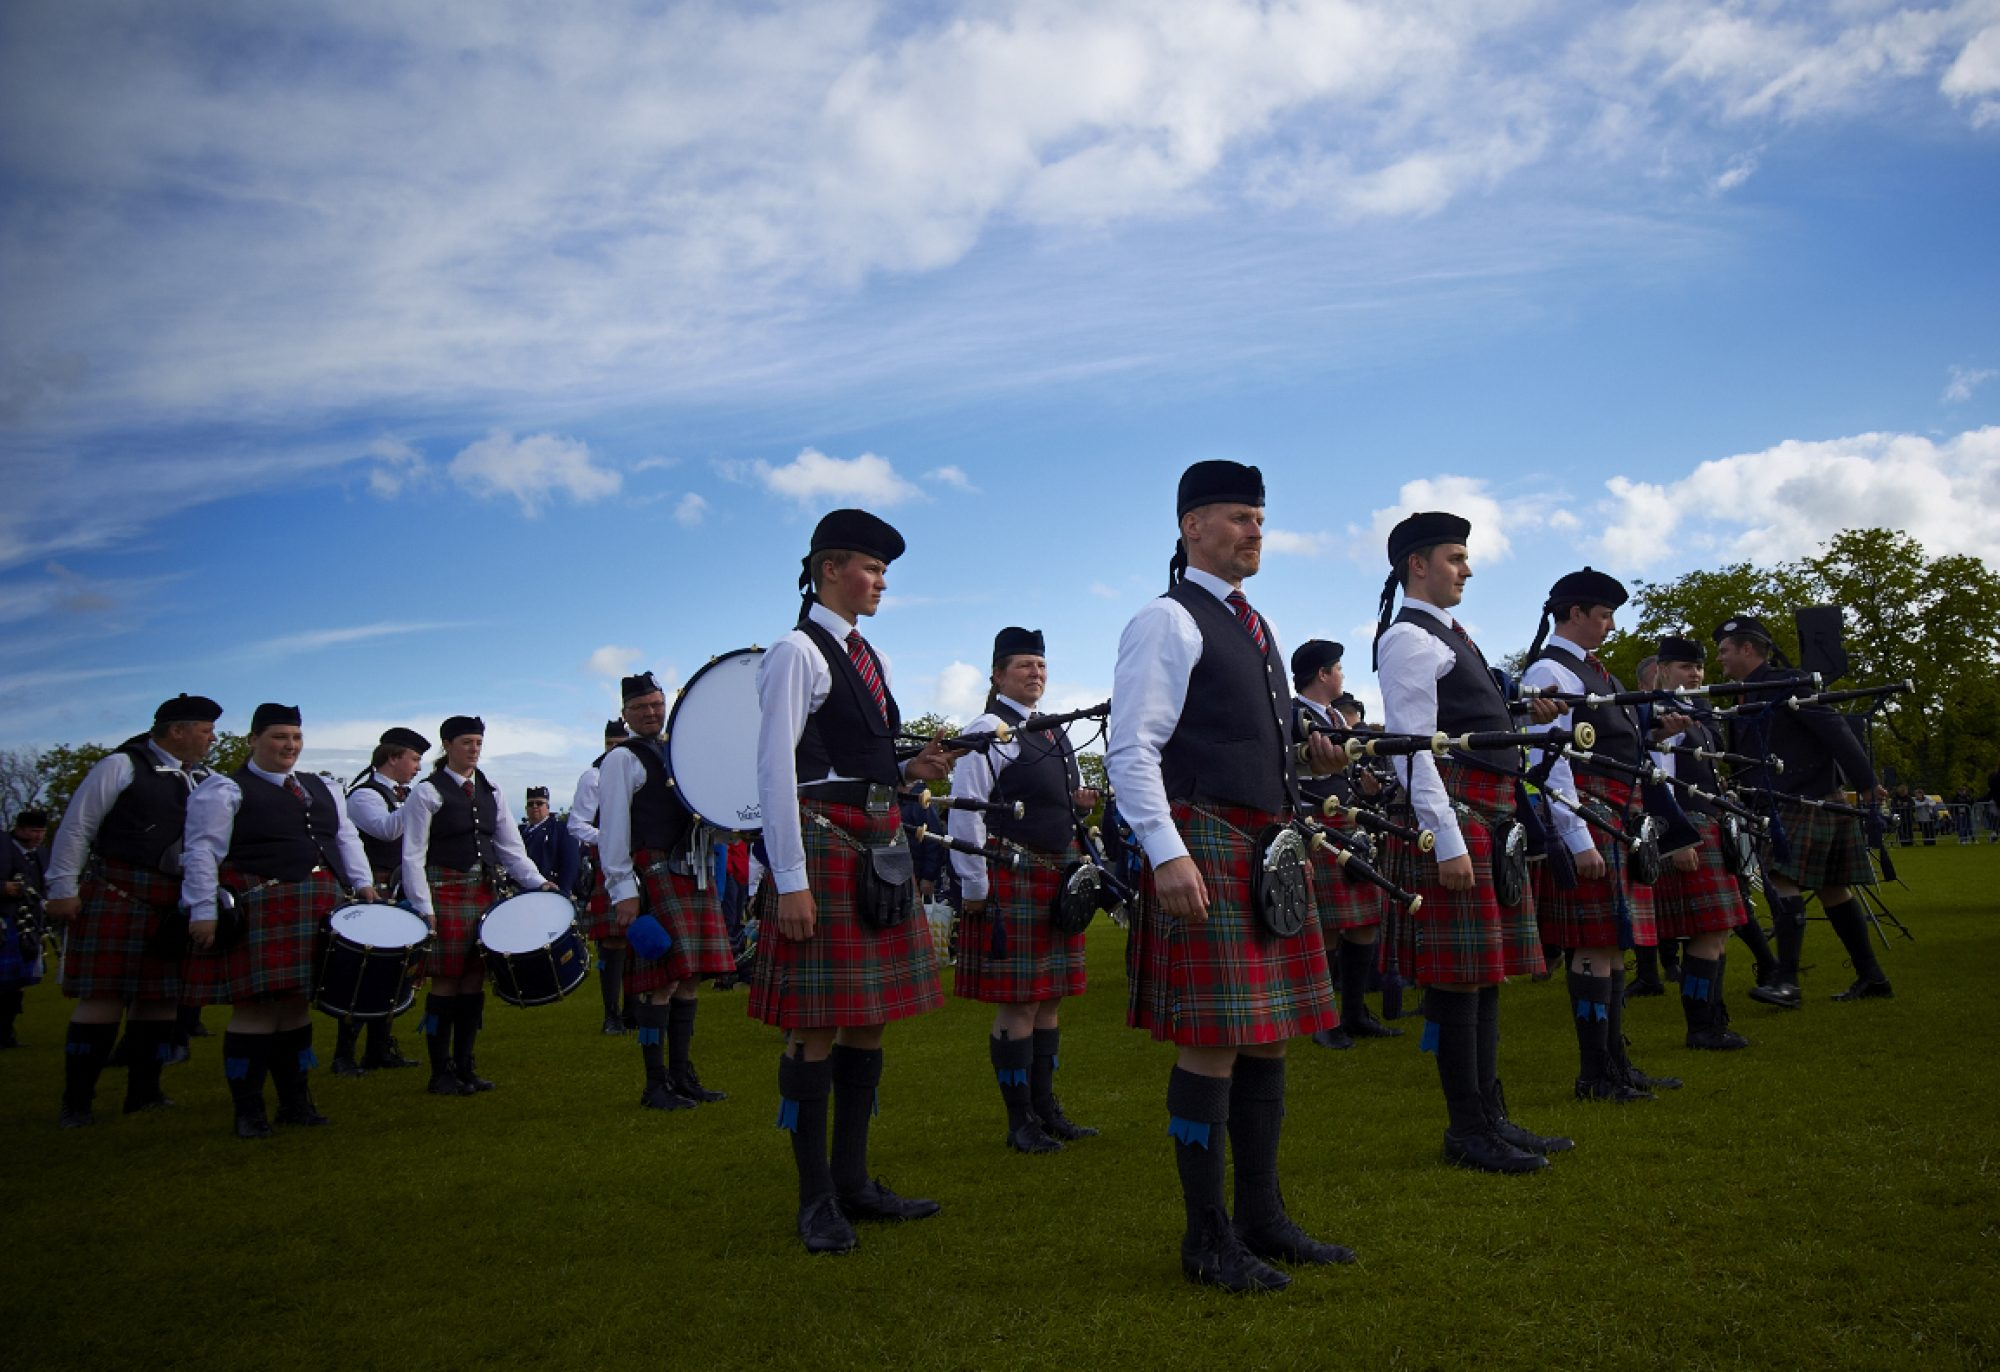 Ayr Pipe Band Society